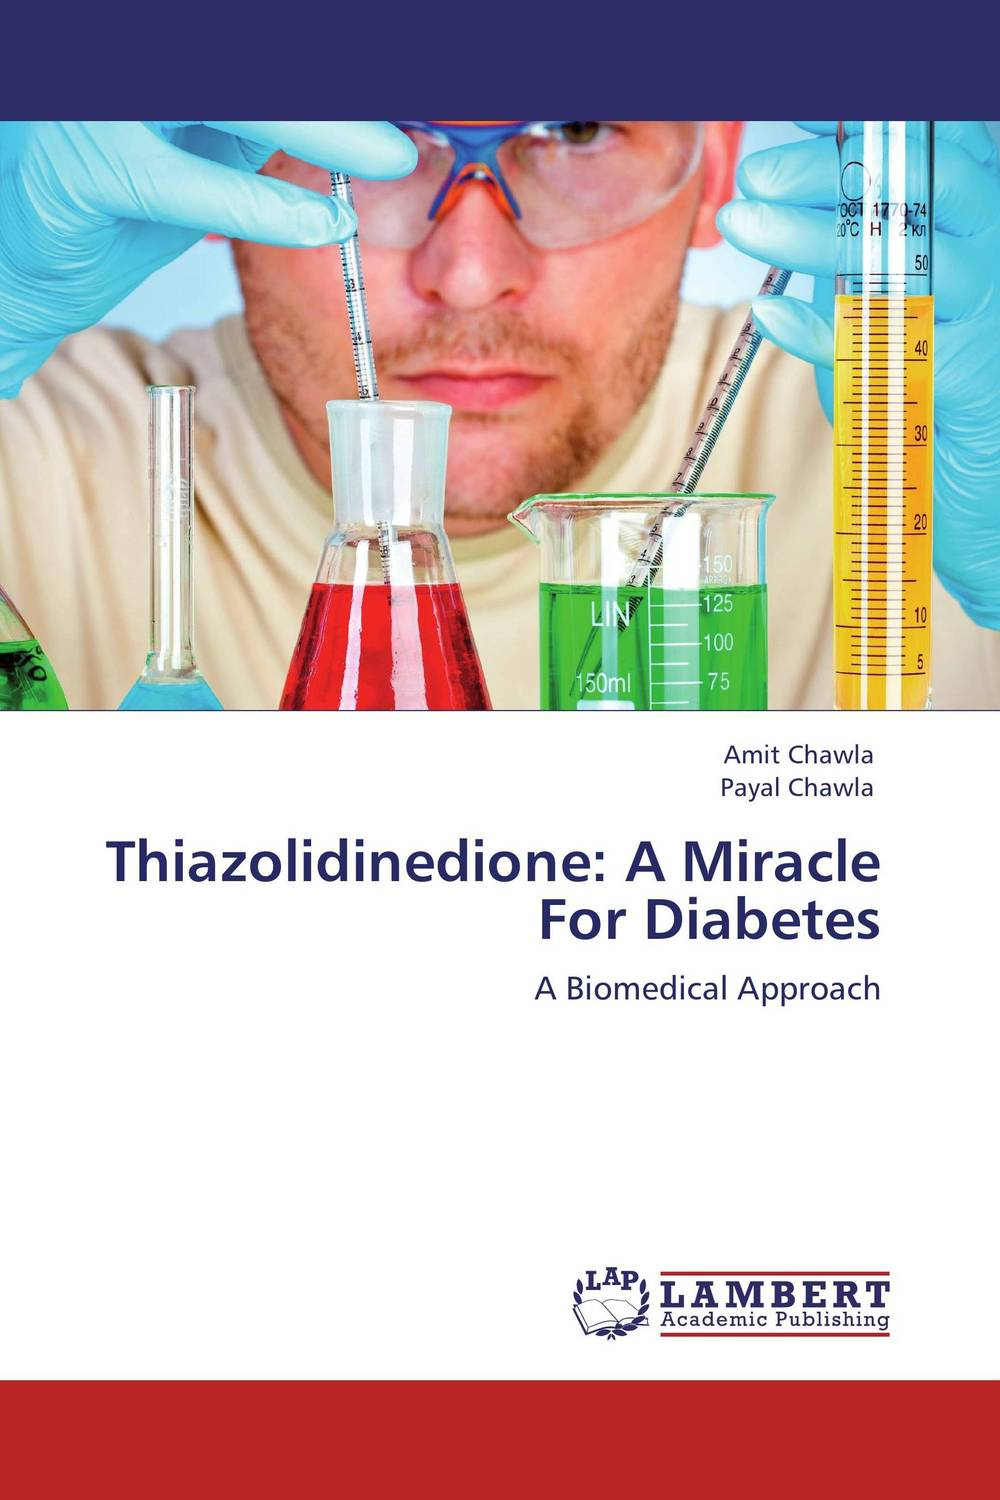 Thiazolidinedione: A Miracle For Diabetes